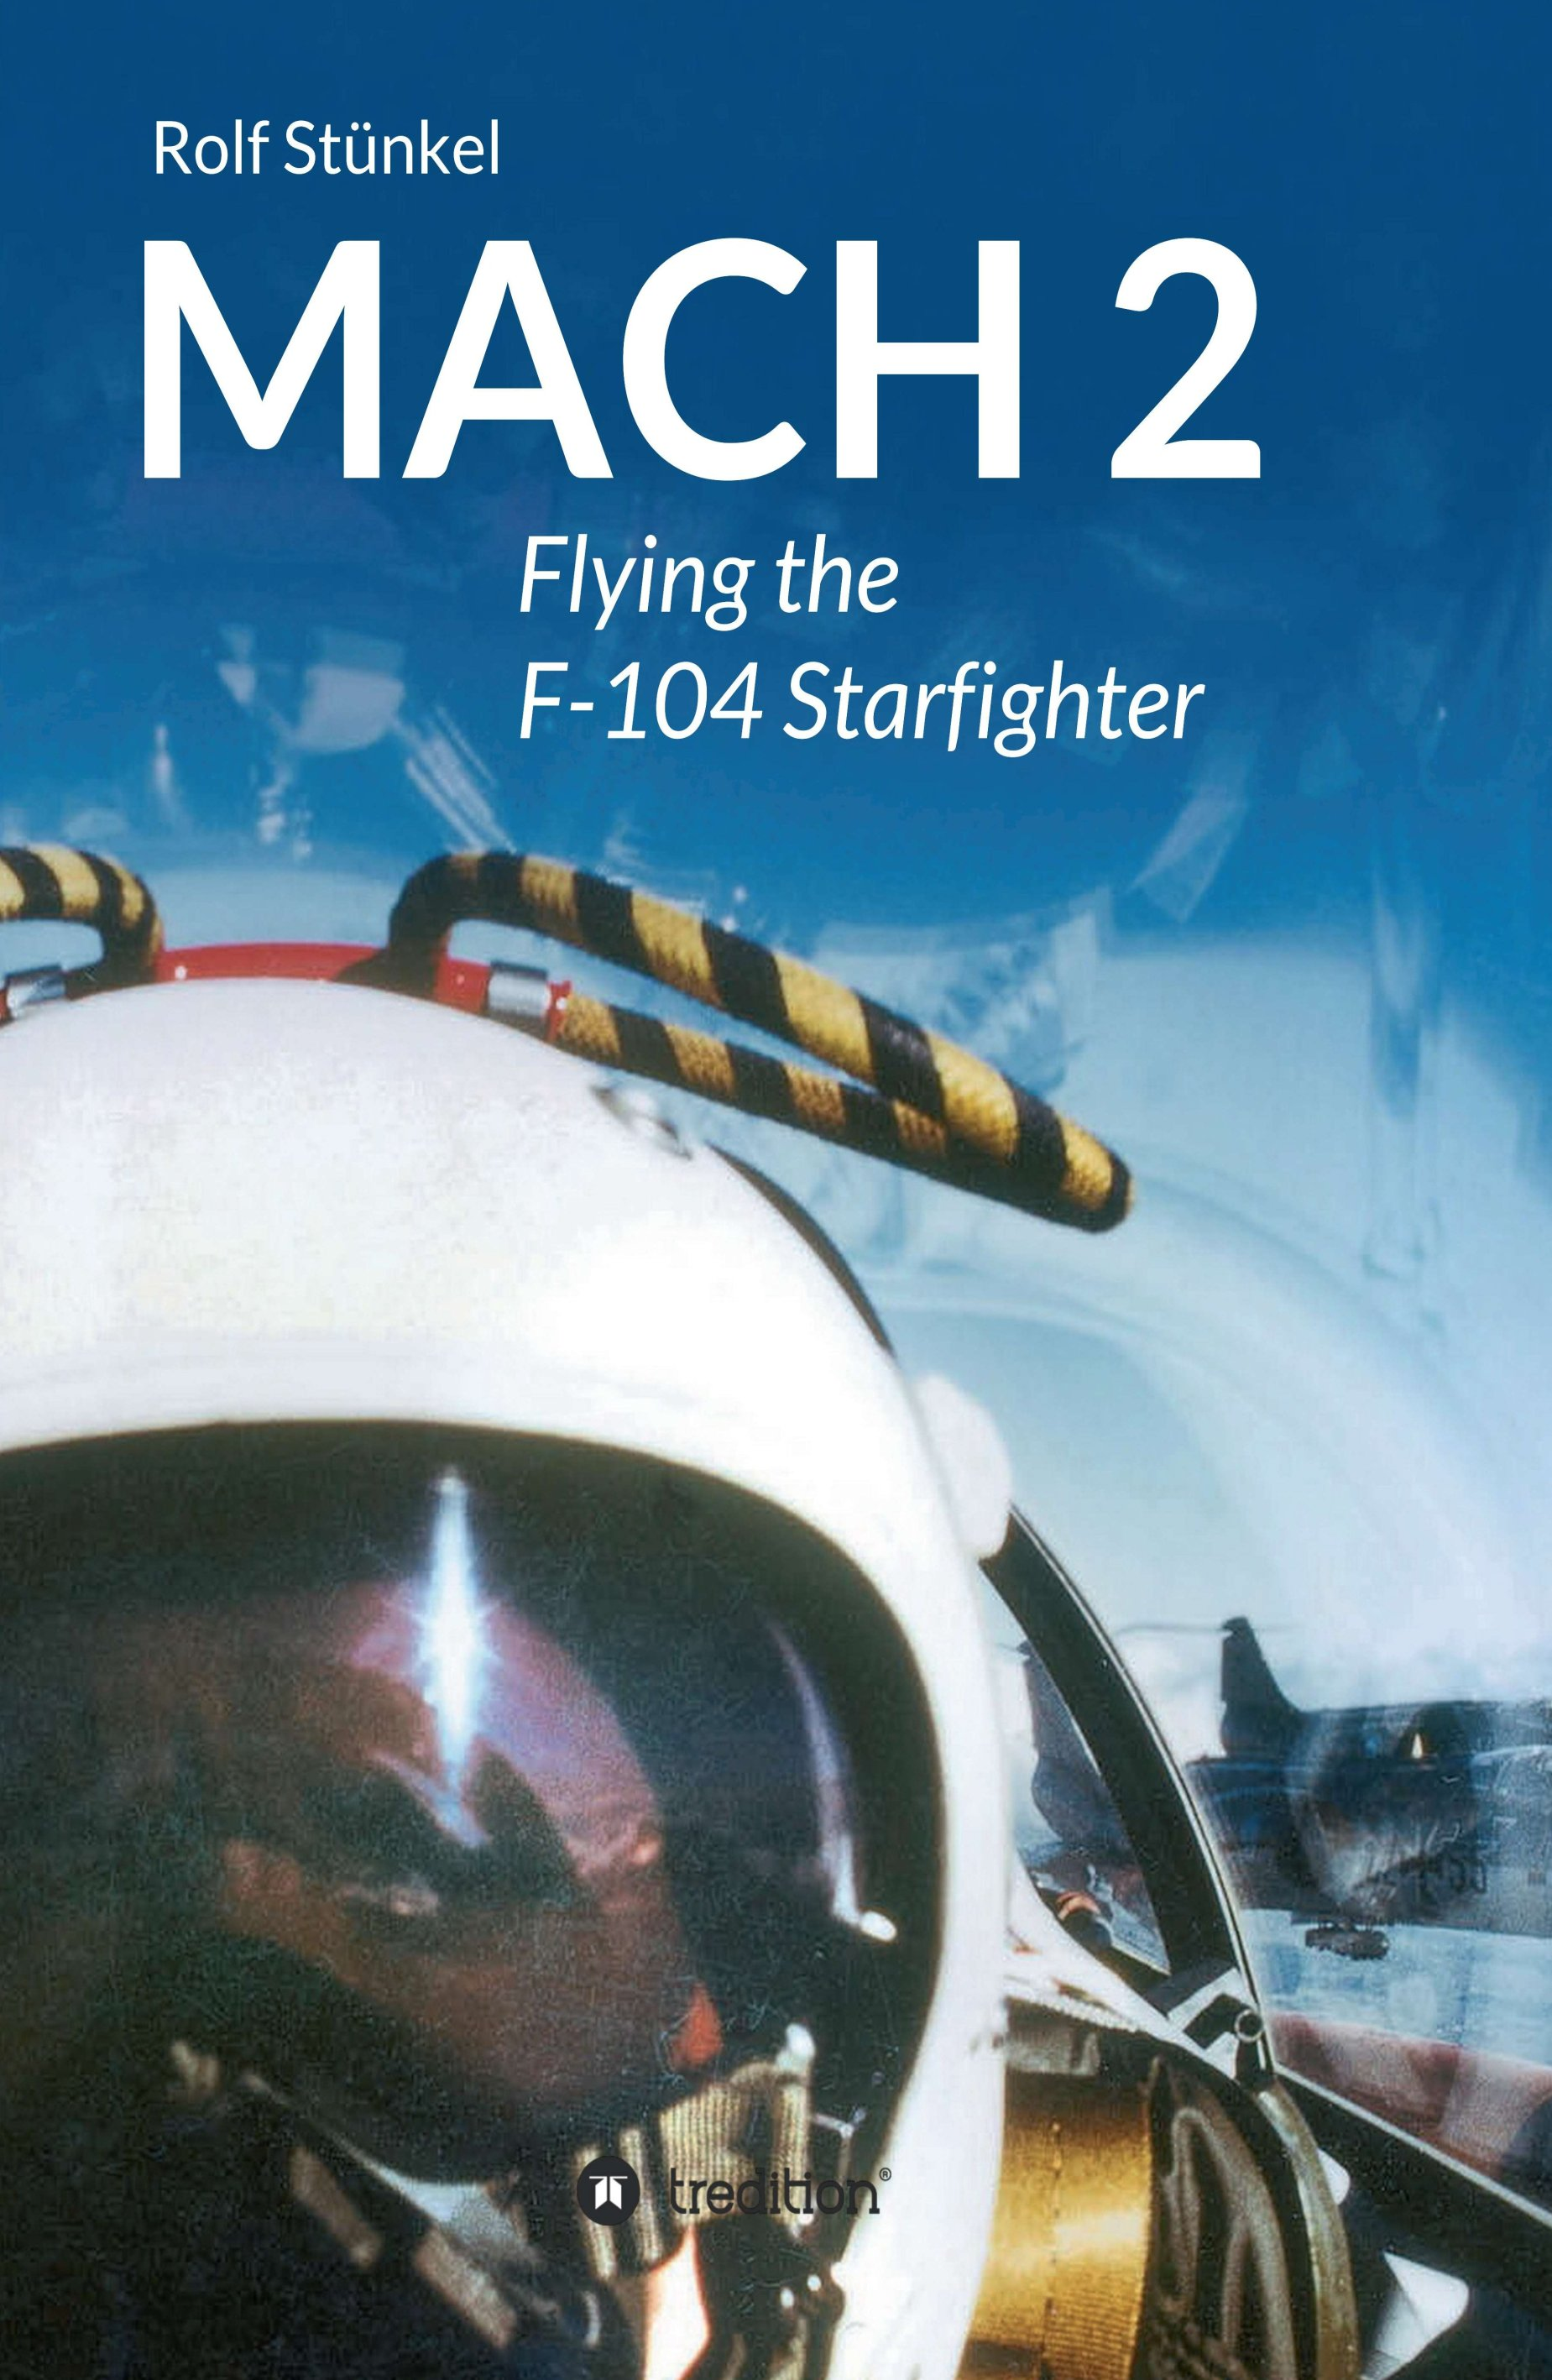 MACH 2 - A personal flashback on one of the darkest Cold War chapters